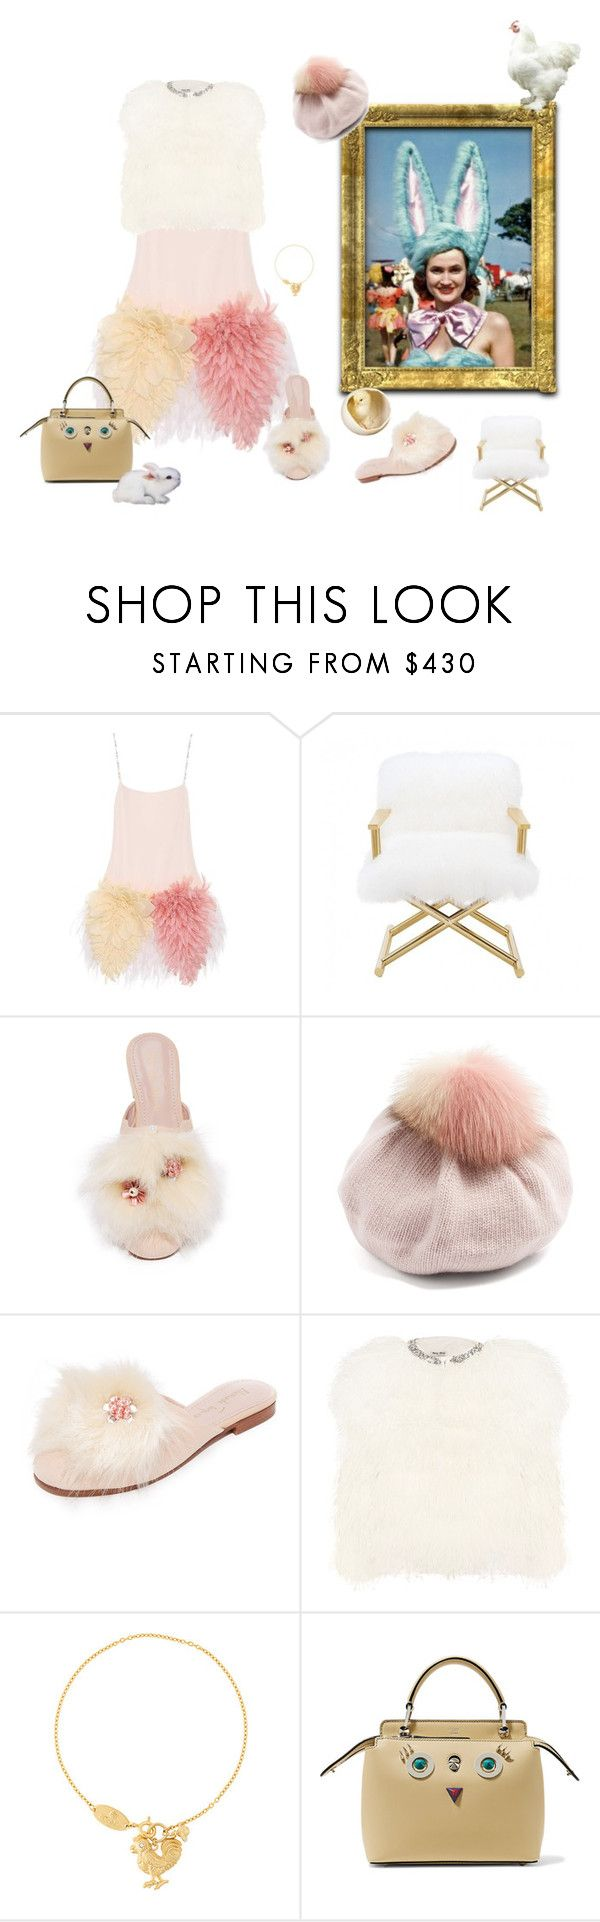 """Fluffy"" by juliabachmann ❤ liked on Polyvore featuring Miu Miu, Alameda Turquesa, Vivienne Westwood and Fendi"